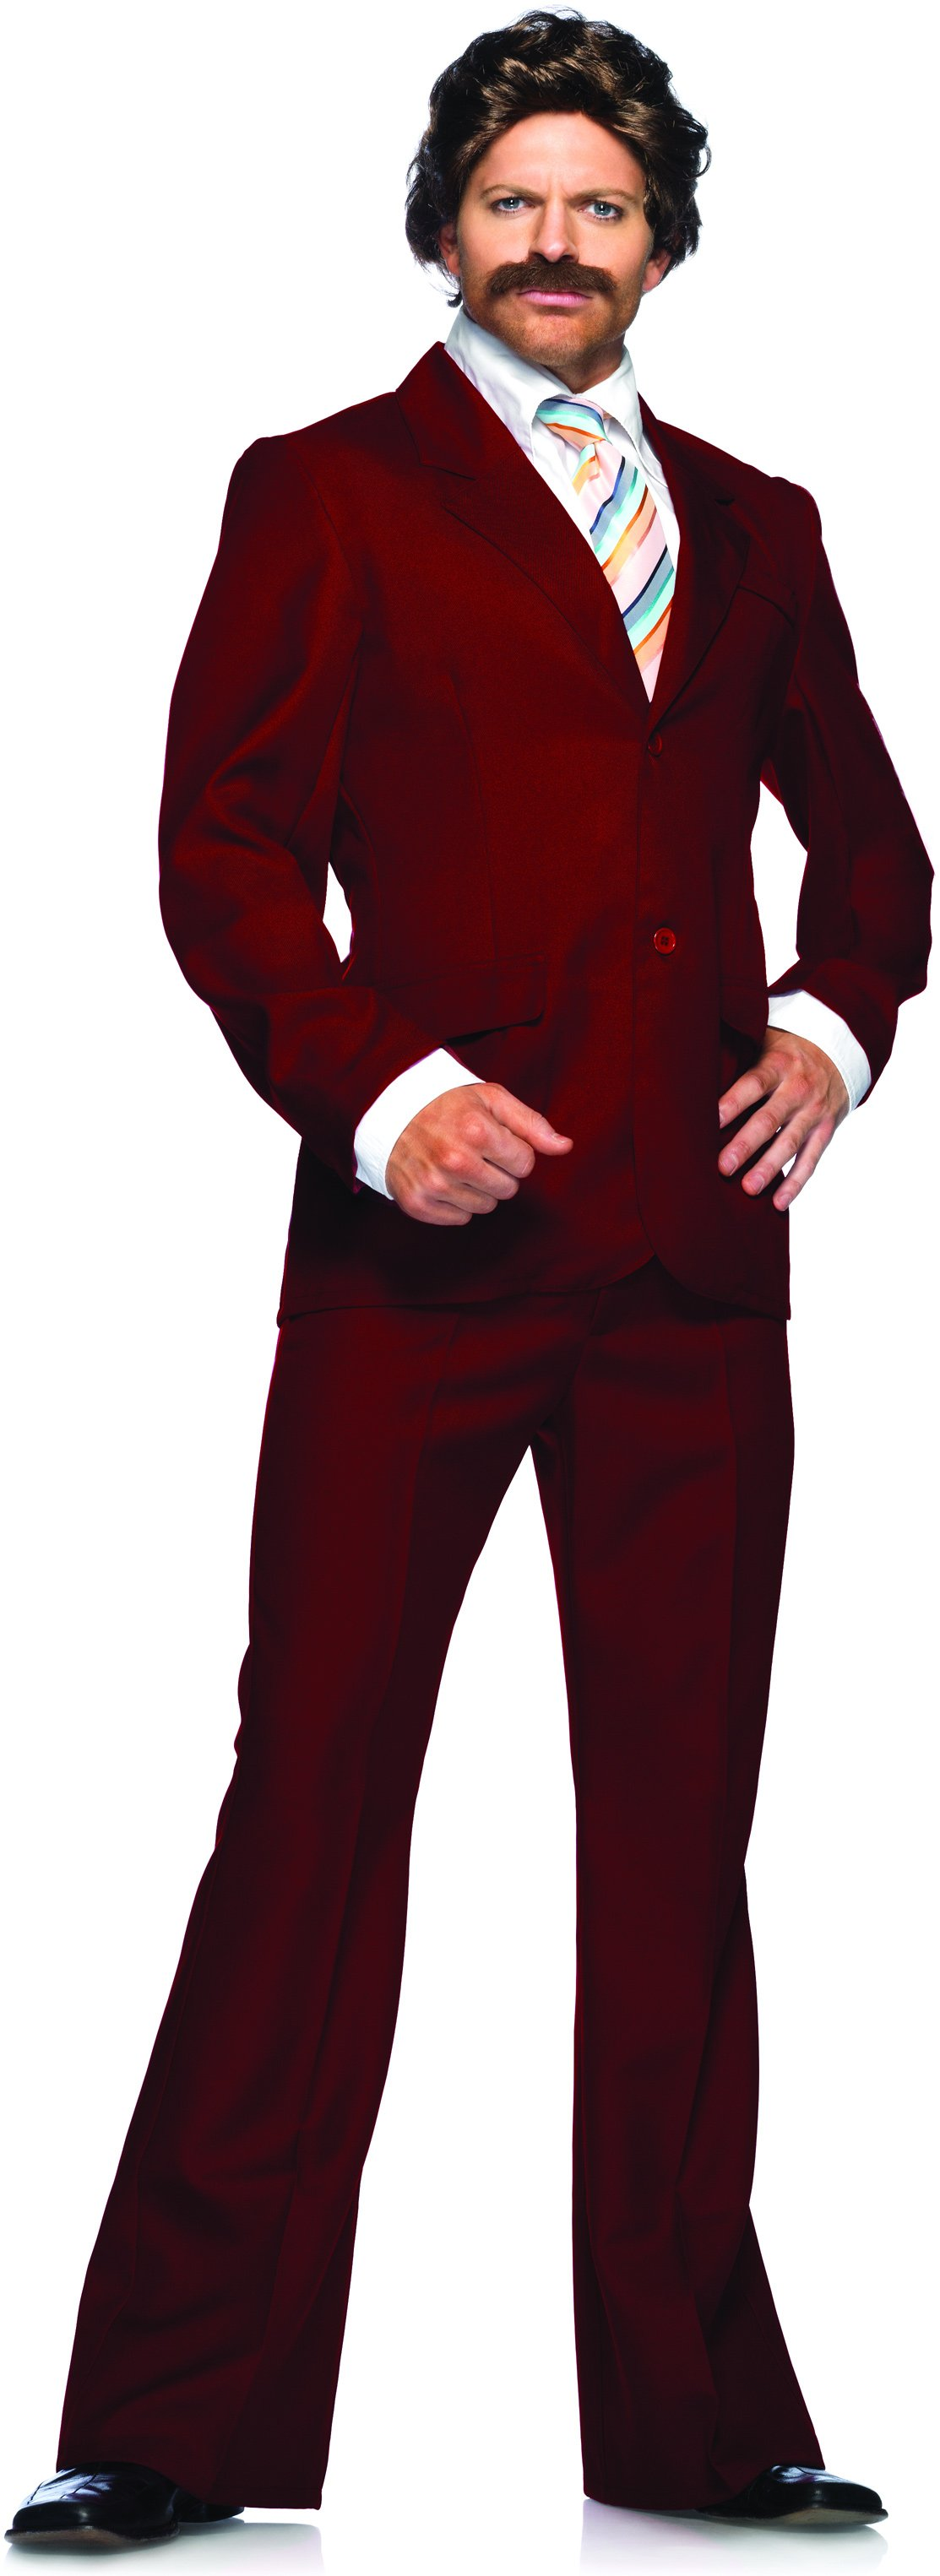 Ron Burgundy Suit Adult Costume